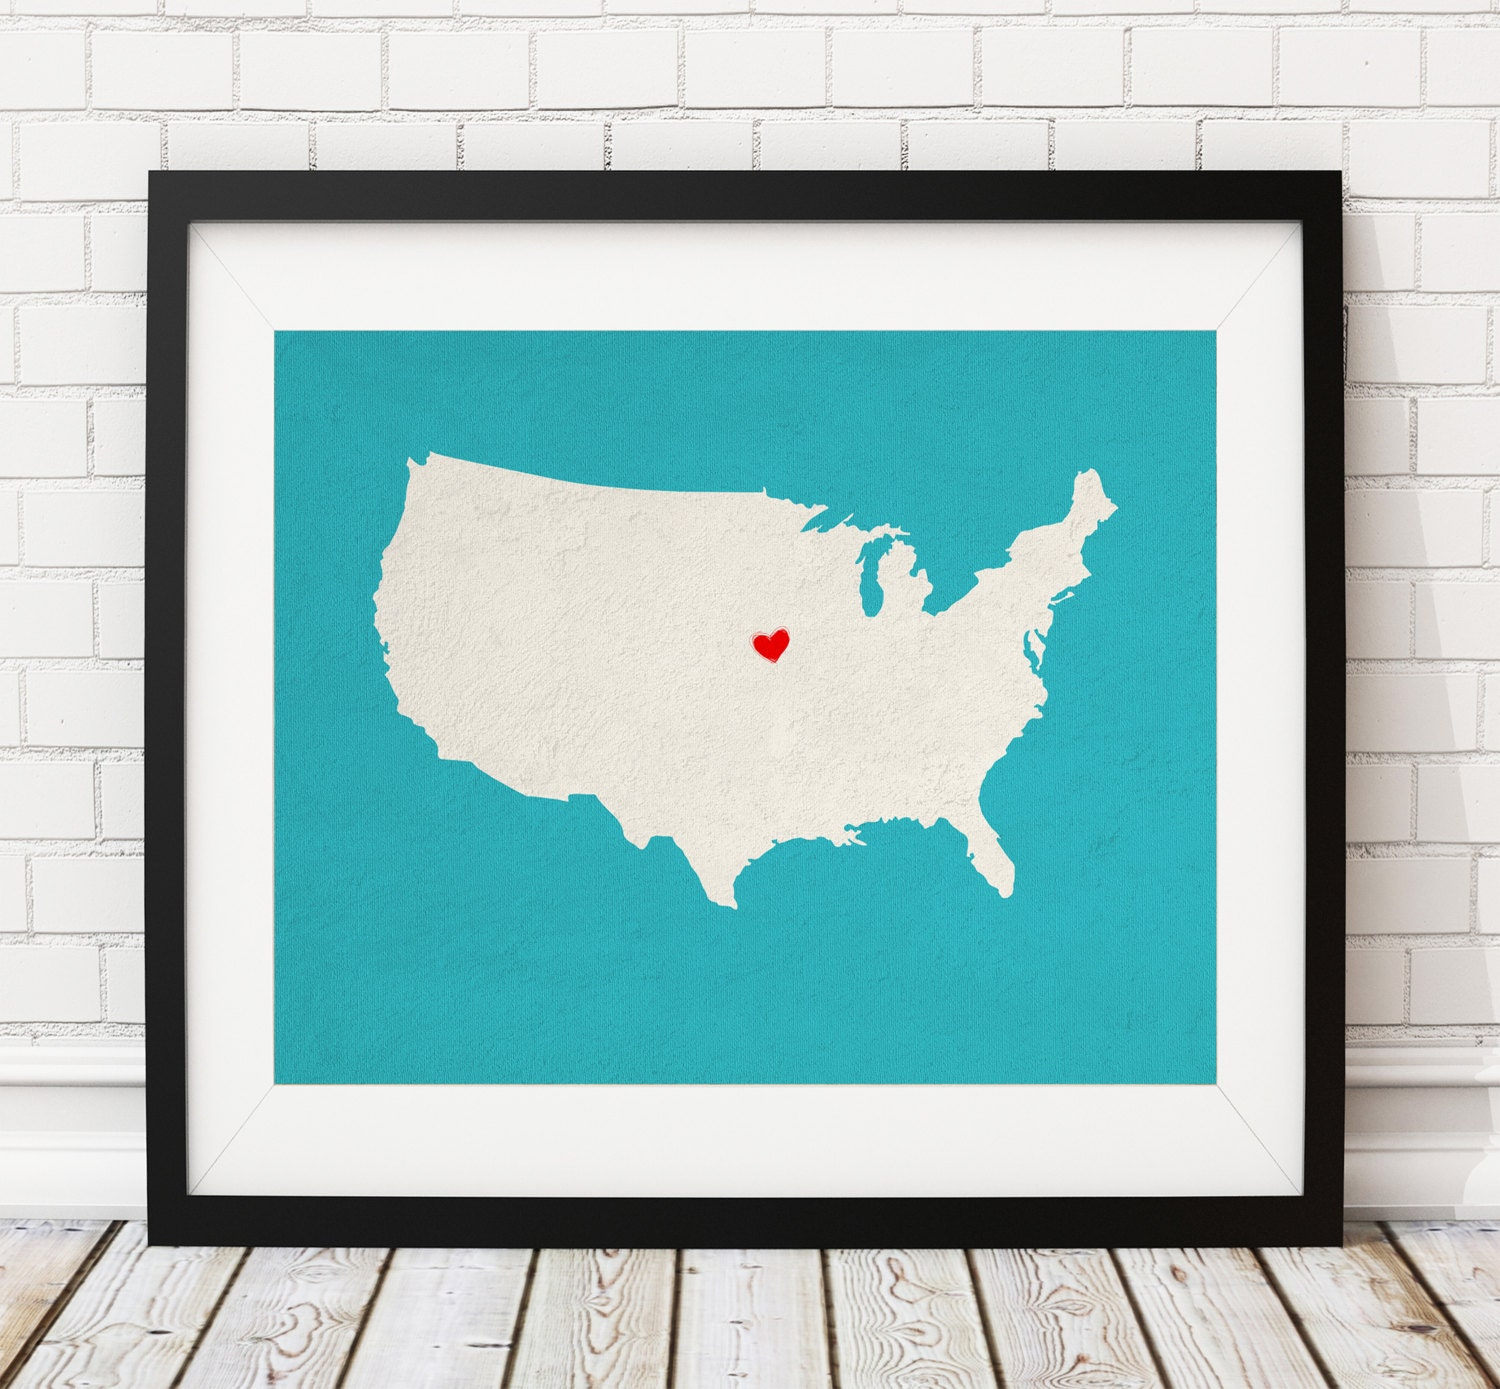 custom united states silhouette customized us map art gift heart map of usa united states map state america map print with united states map silhouette